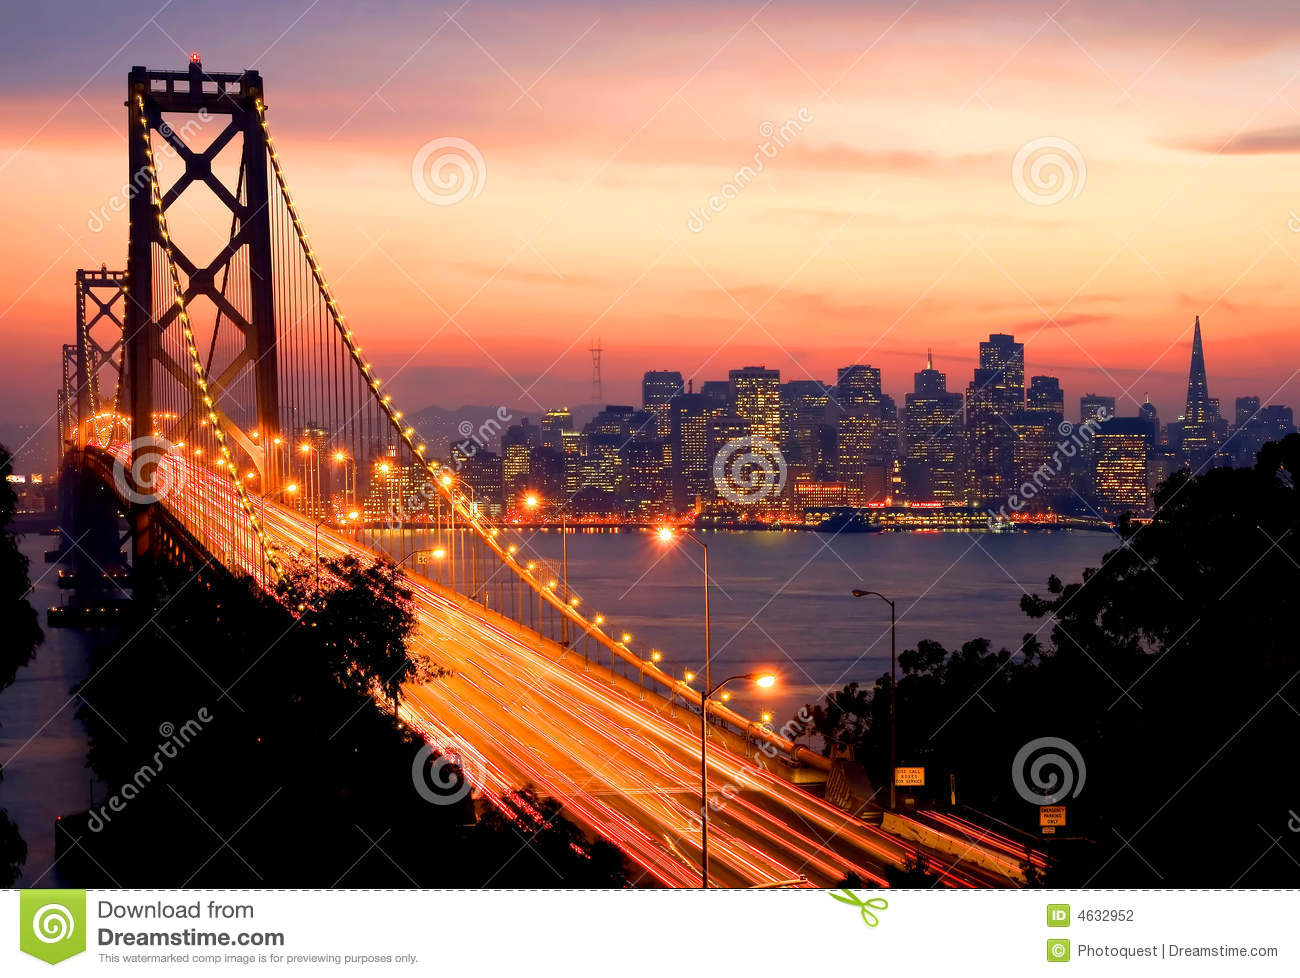 san francisco am sonnenuntergang stockfotografie bild 4632952. Black Bedroom Furniture Sets. Home Design Ideas